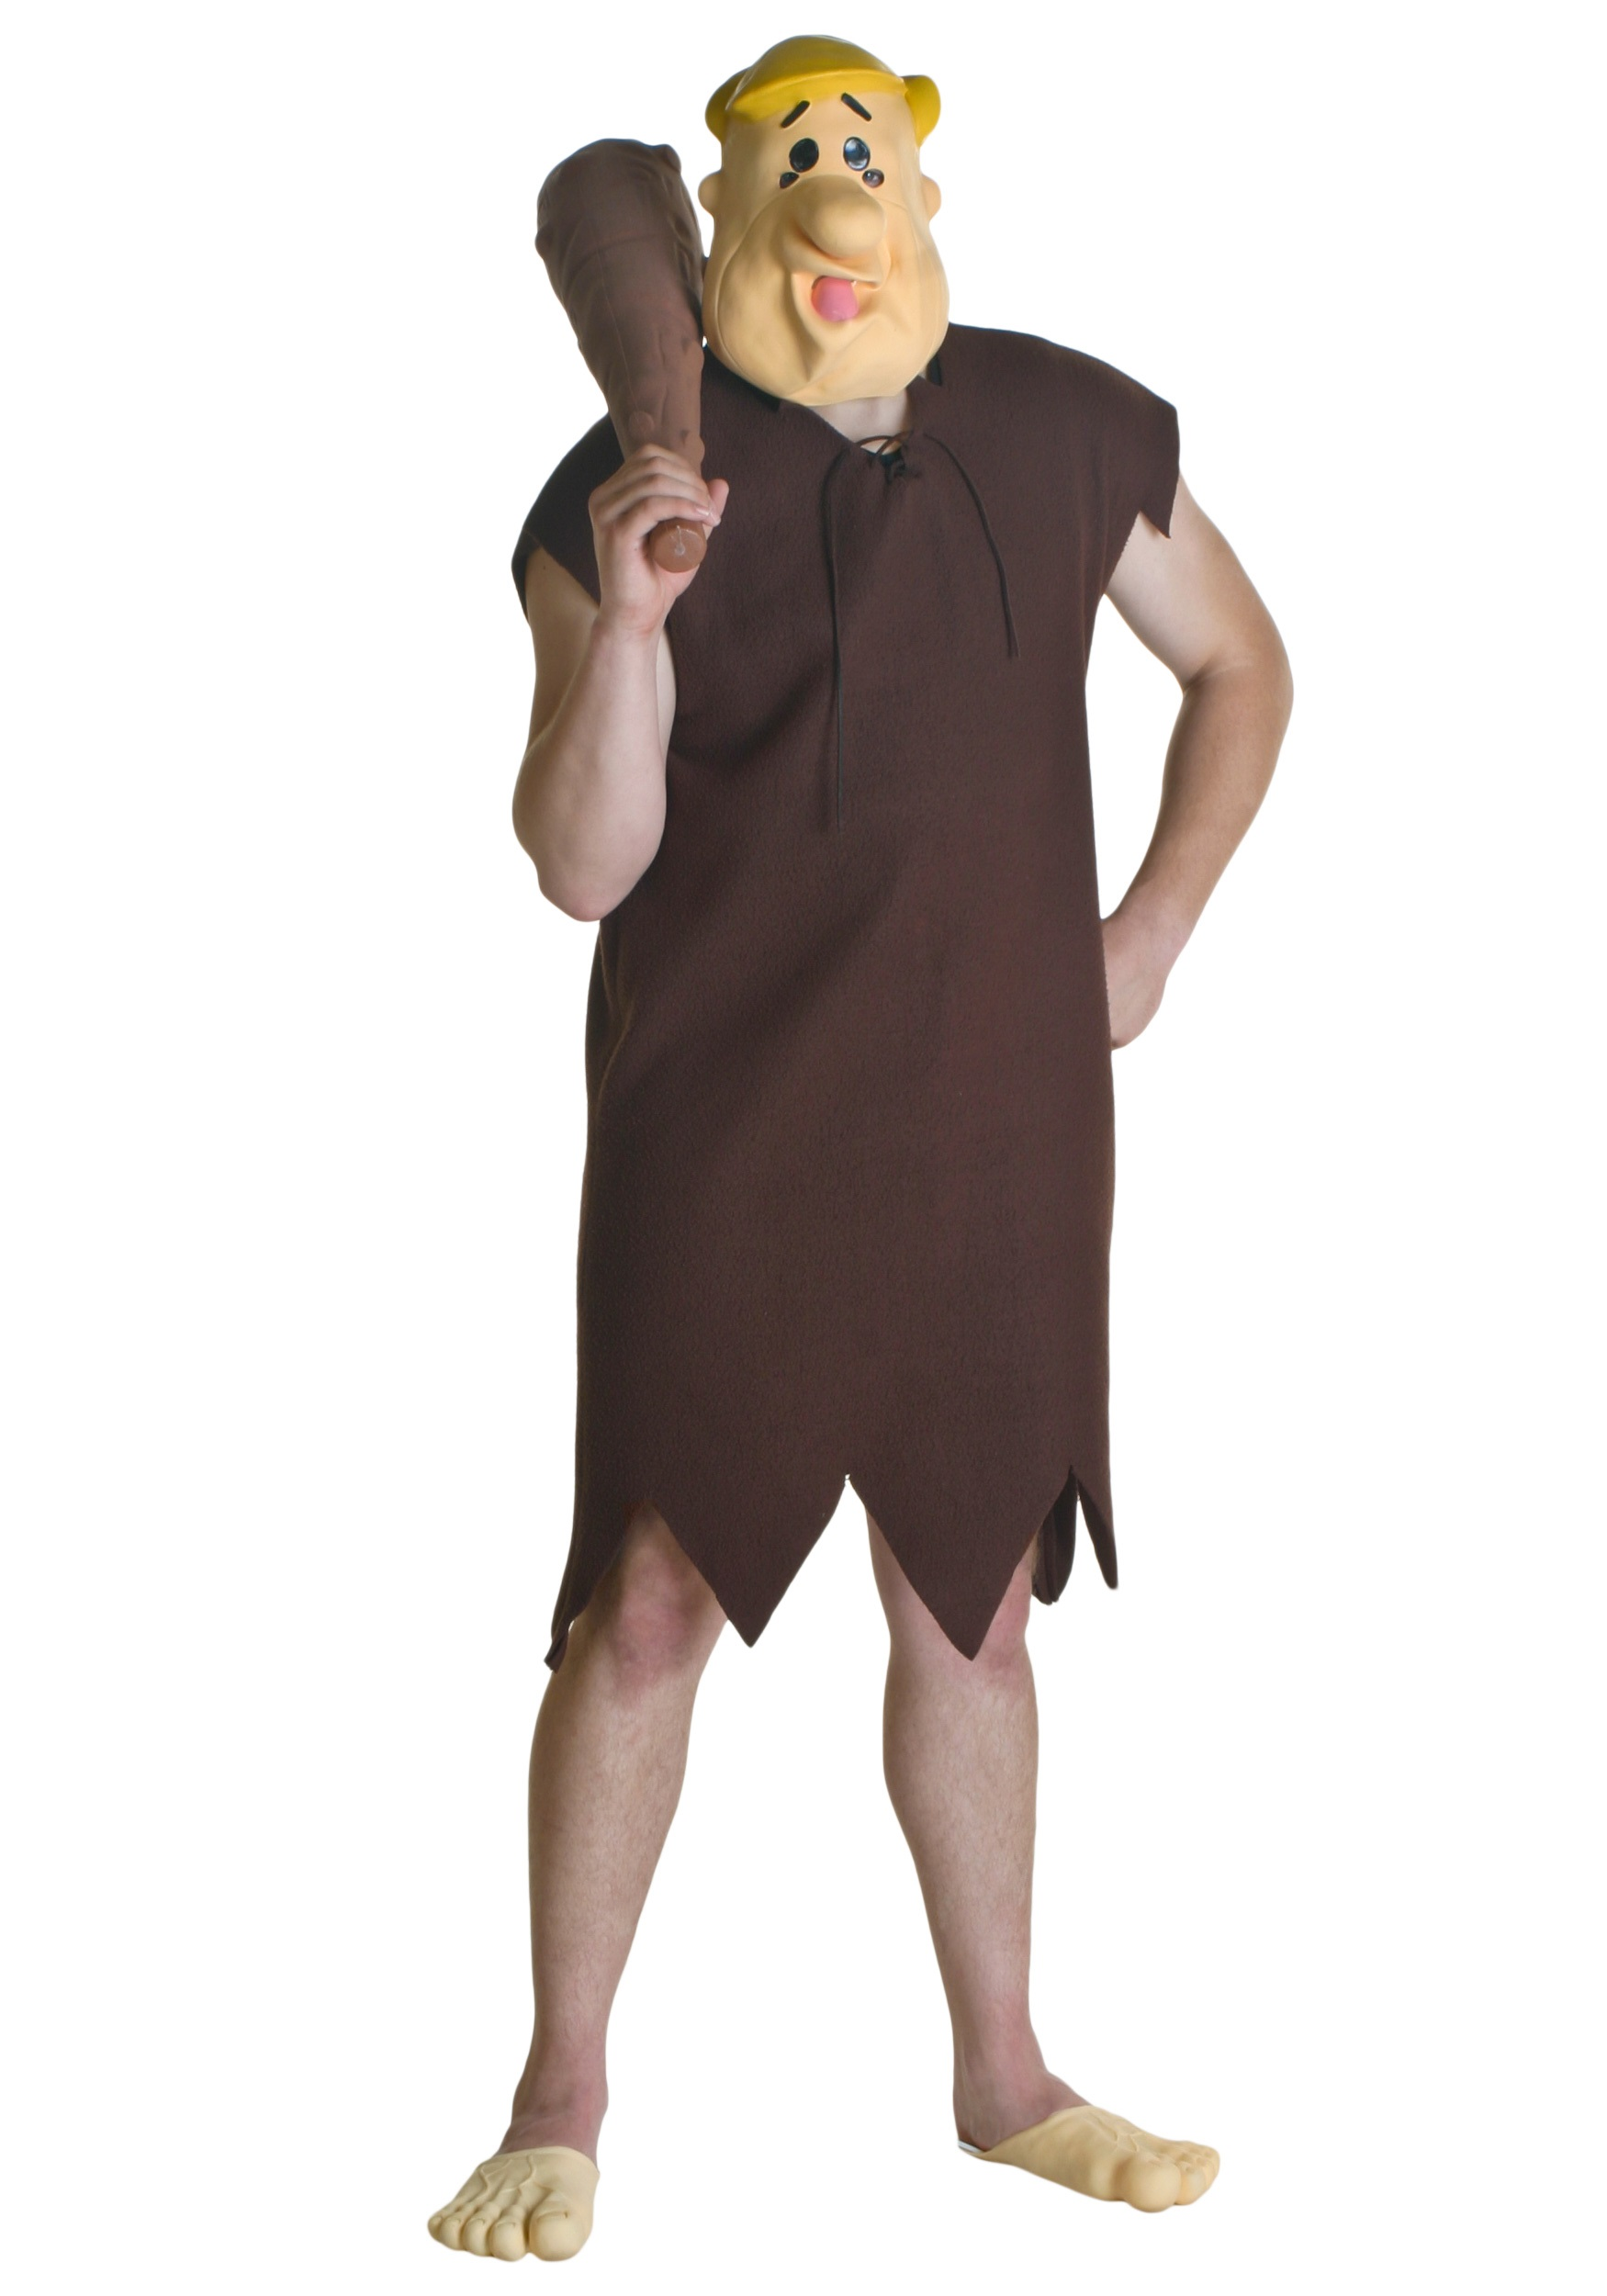 Adult Barney Rubble Flintstone Costume  sc 1 st  Costumes Galore & Barney Rubble Flintstone Costume